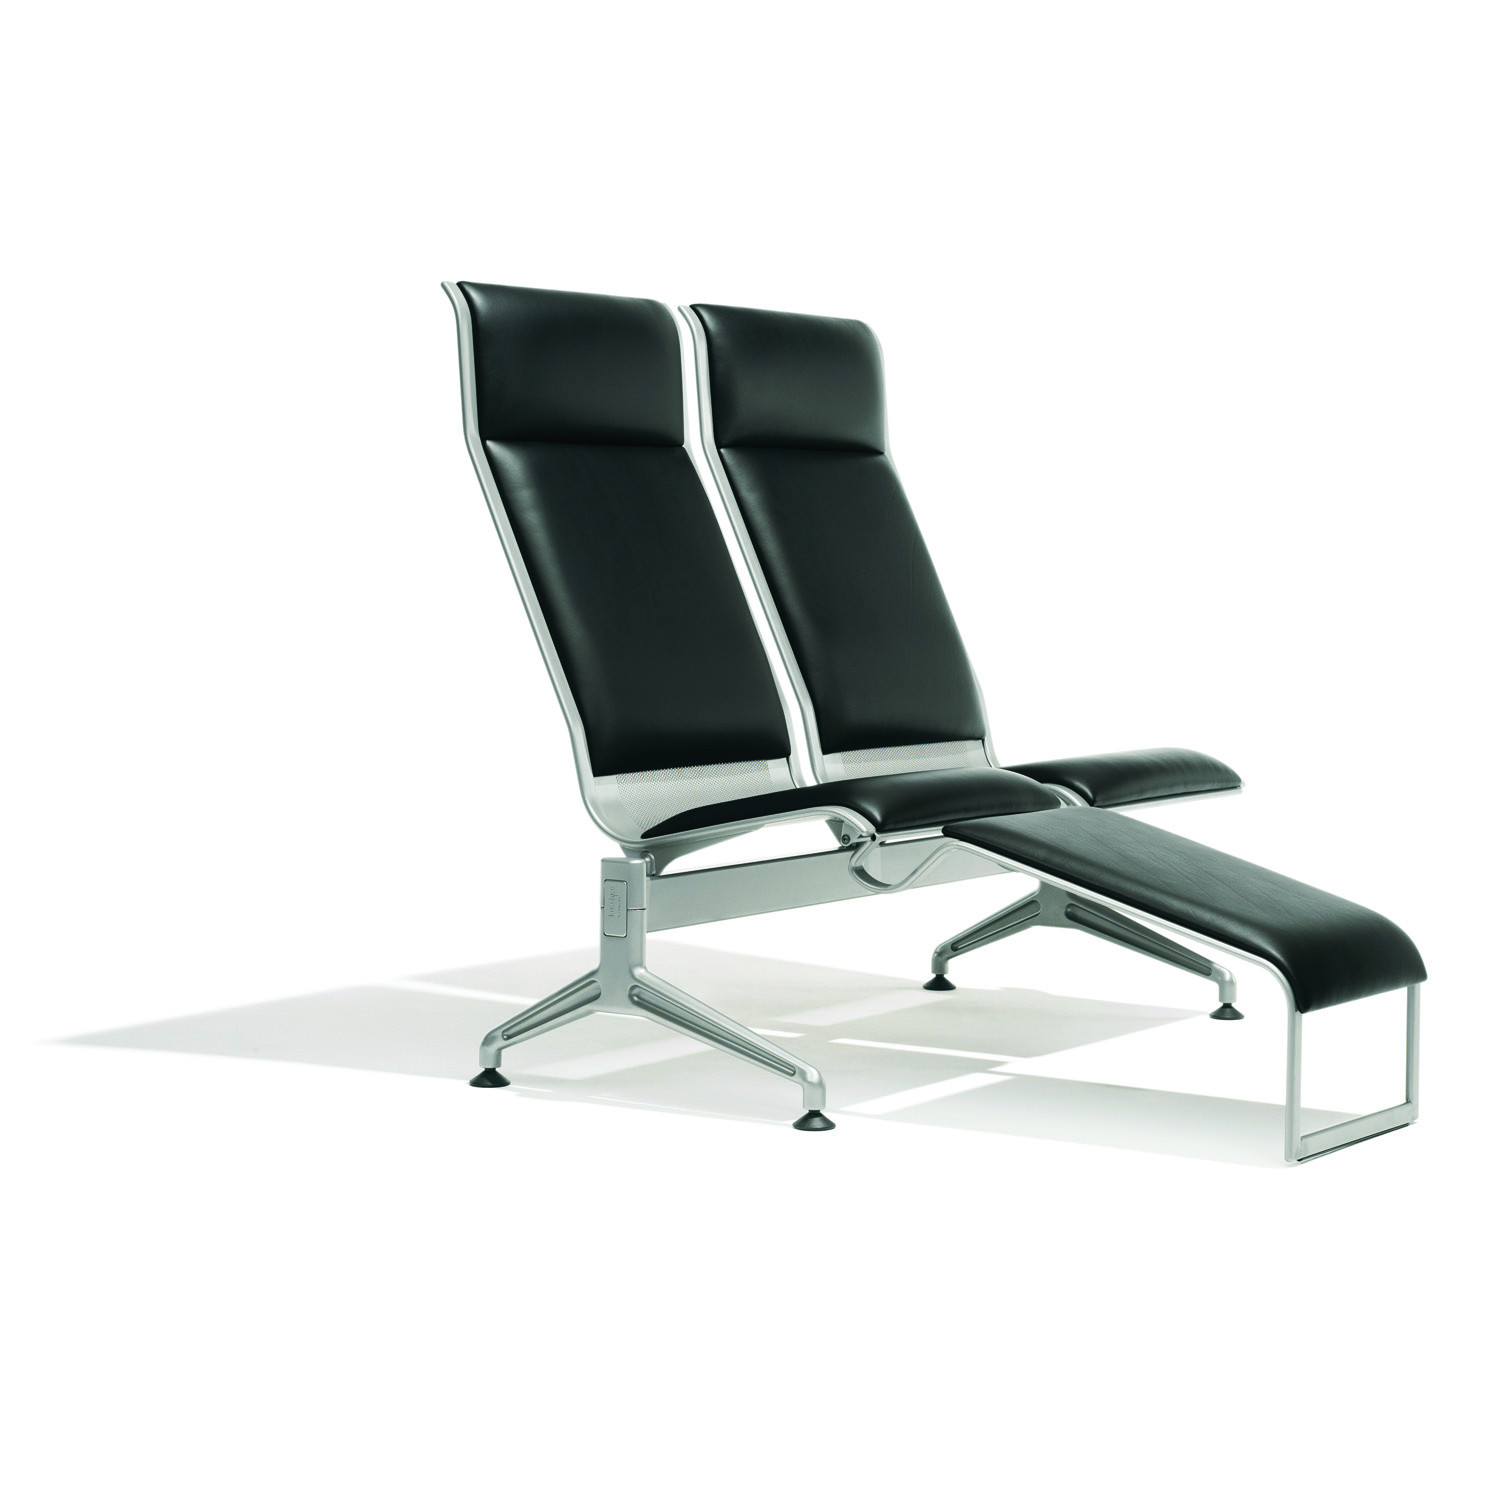 7100 Terminal Chairs with high backrest and incorporated legs stool